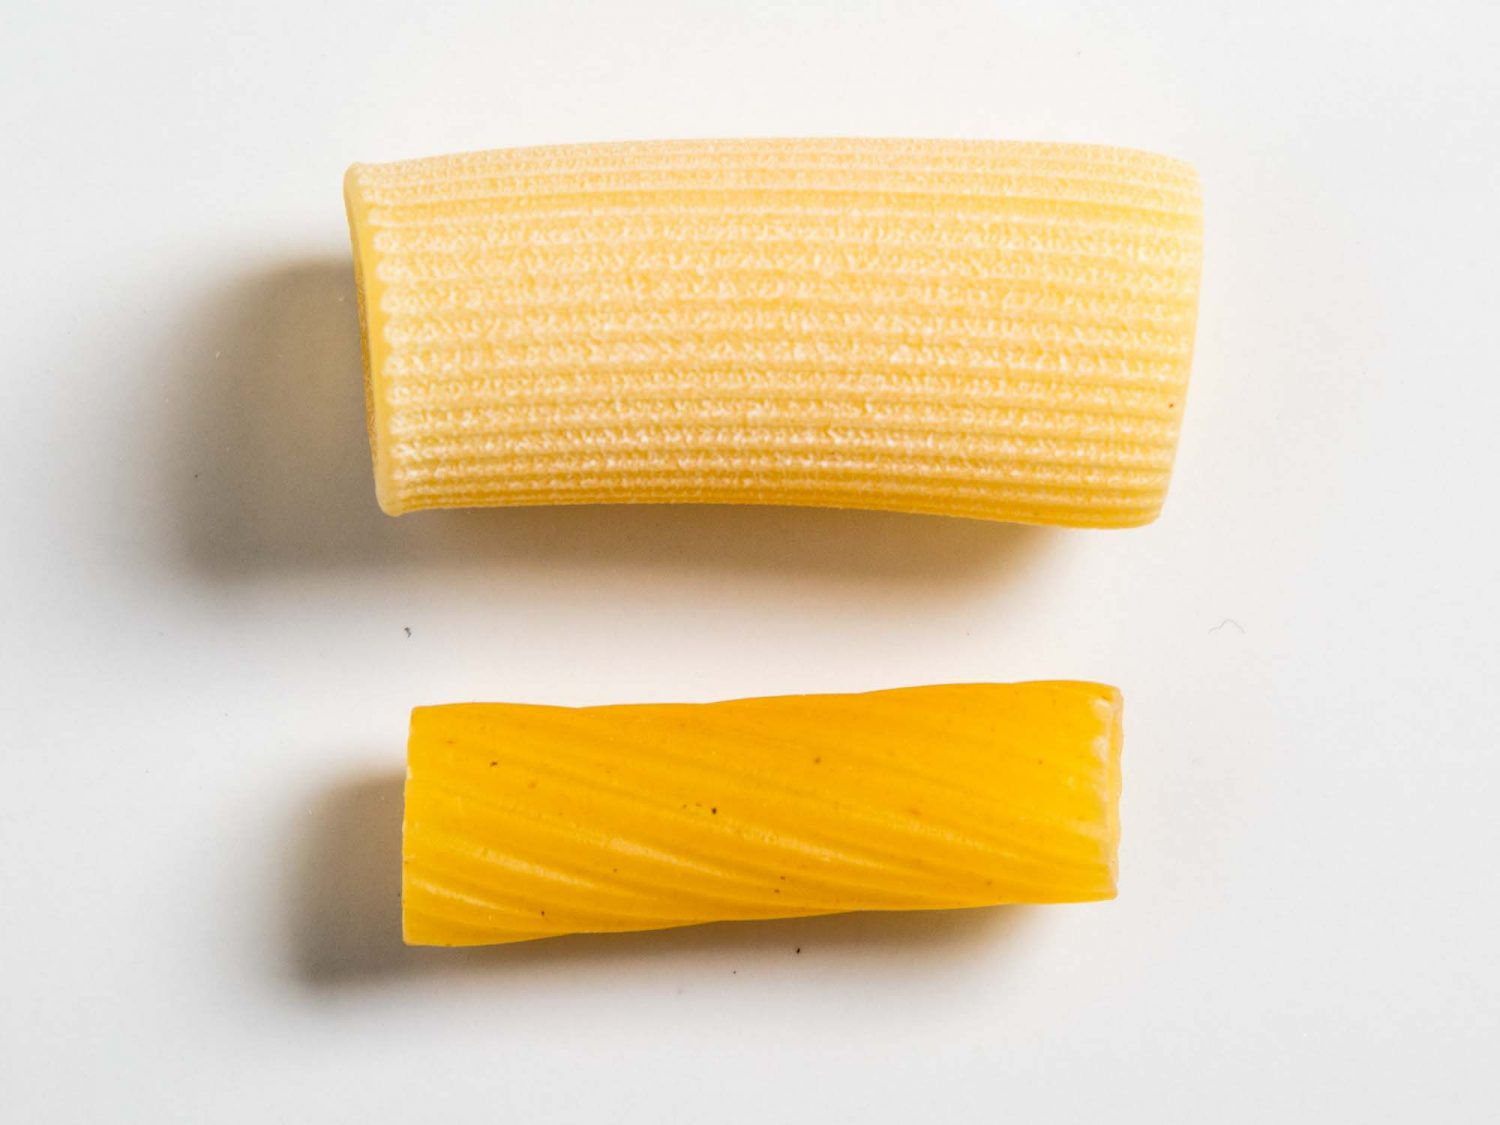 The difference between two dried pasta noodles.